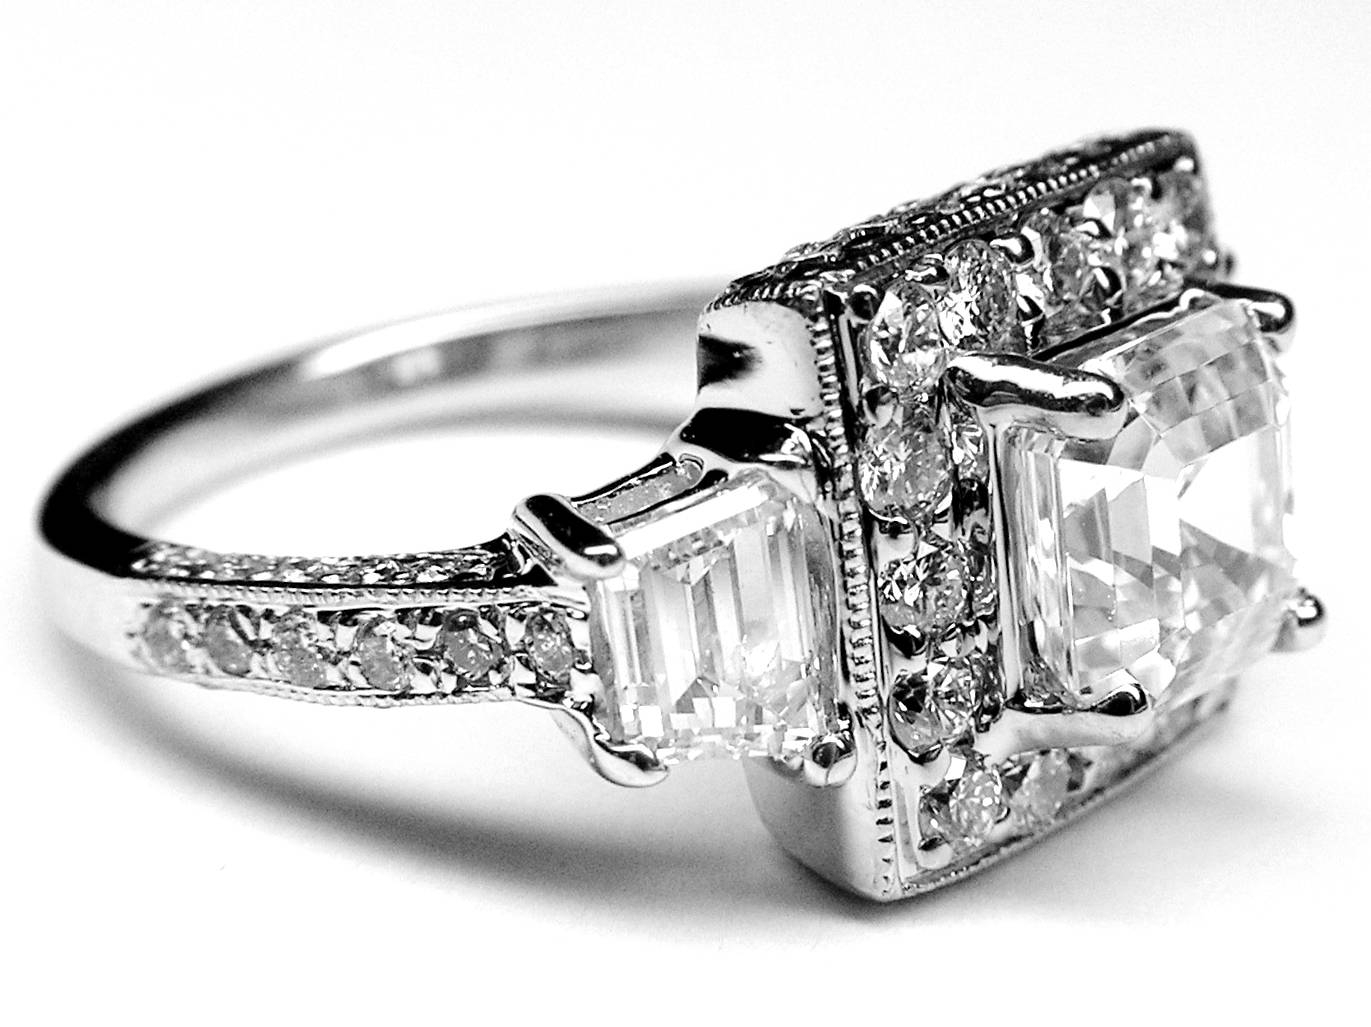 Engagement Ring Asscher Cut Diamond Vintage Halo Engagement Ring Throughout Vintage Halo Engagement Ring Settings (View 2 of 15)